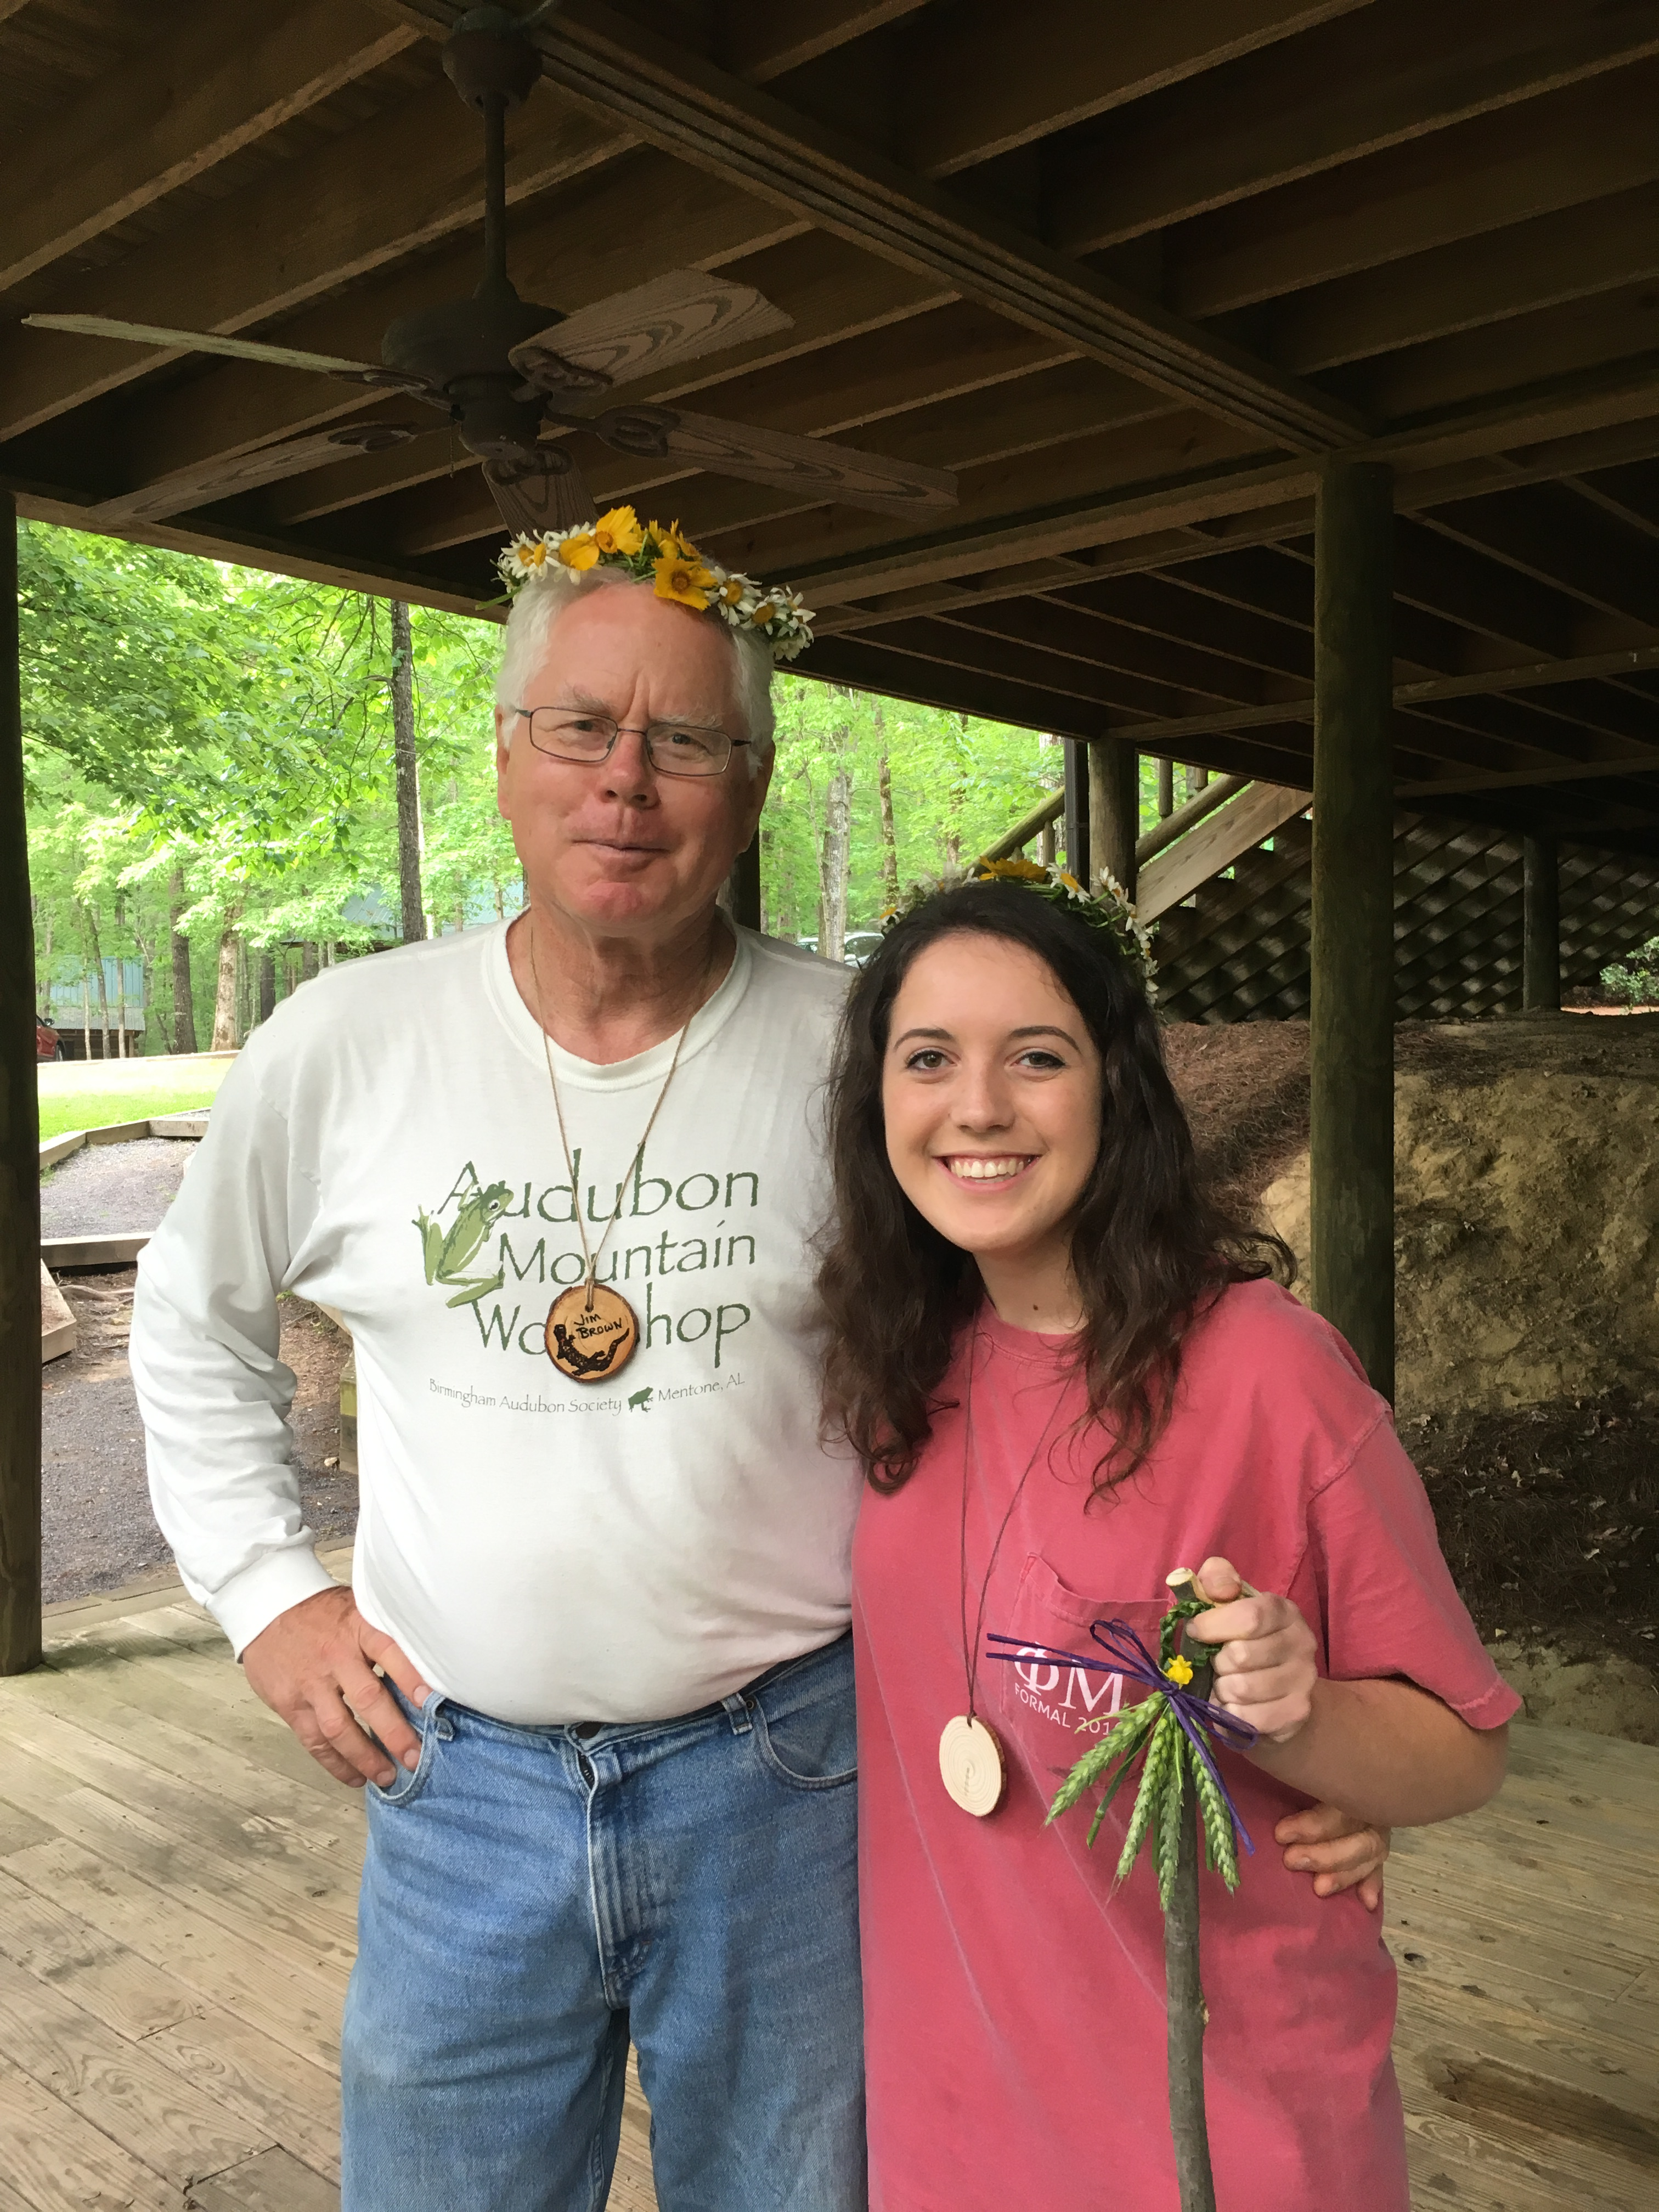 Dr. Jim Brown, who led this project, with student interviewer Keely Smith after his folklore class at the workshop.